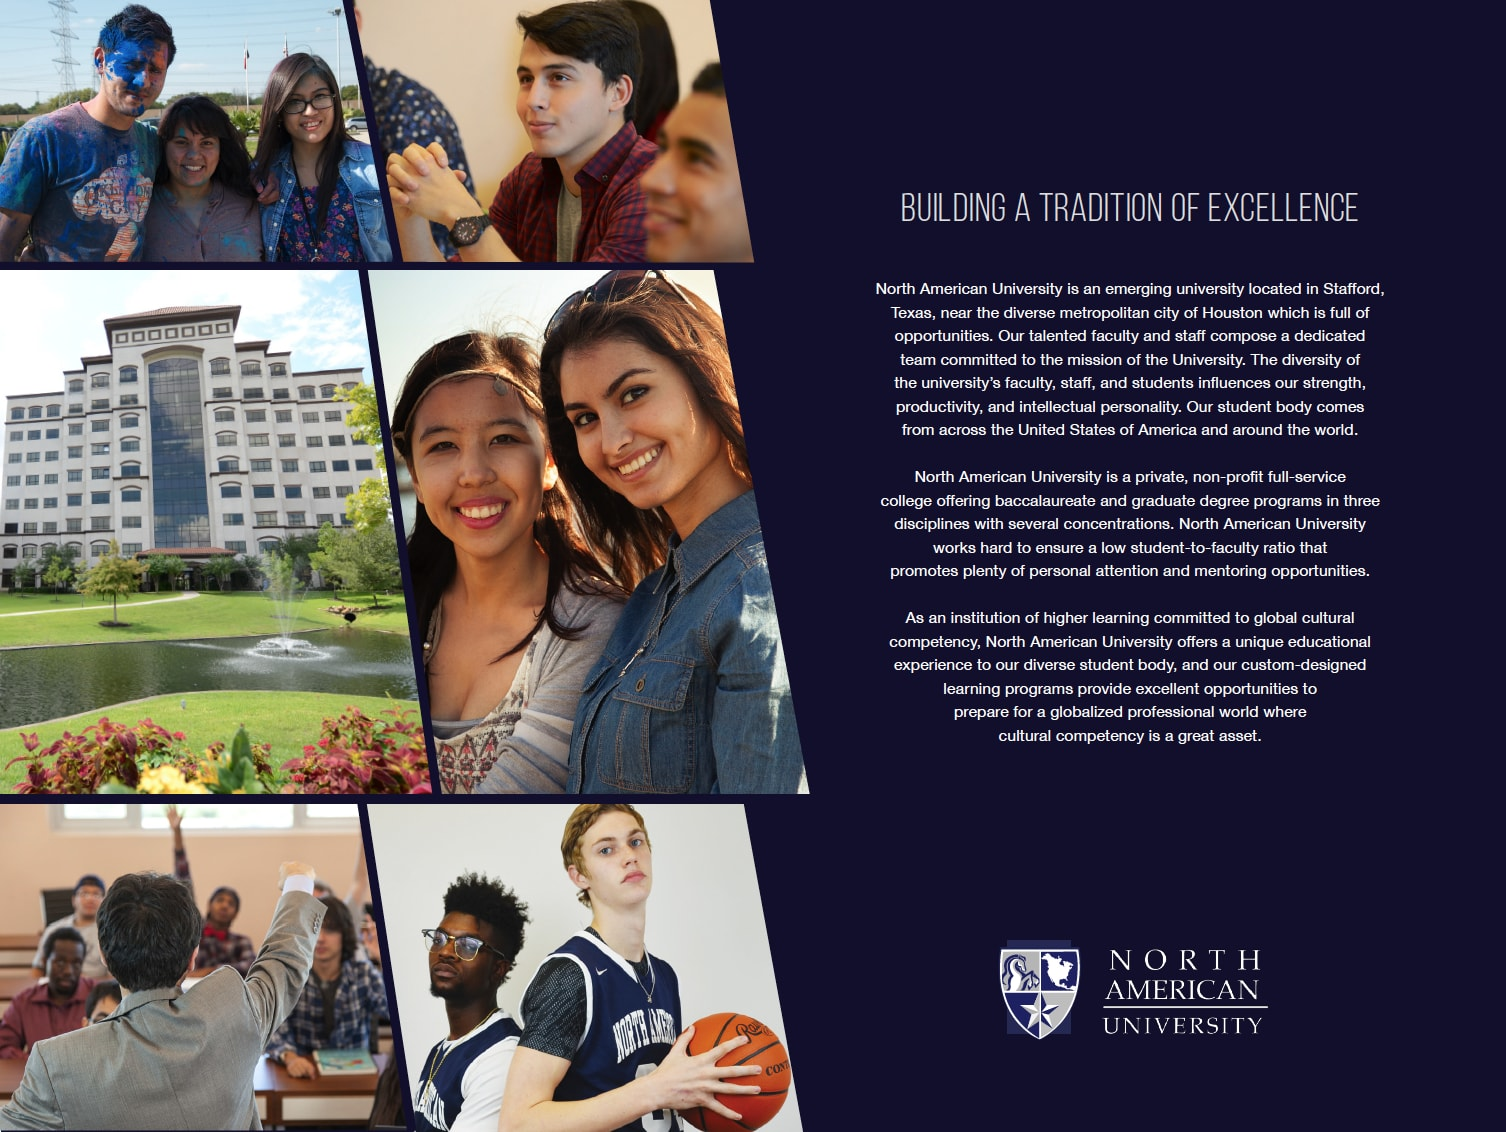 brochures find out more information about north american university